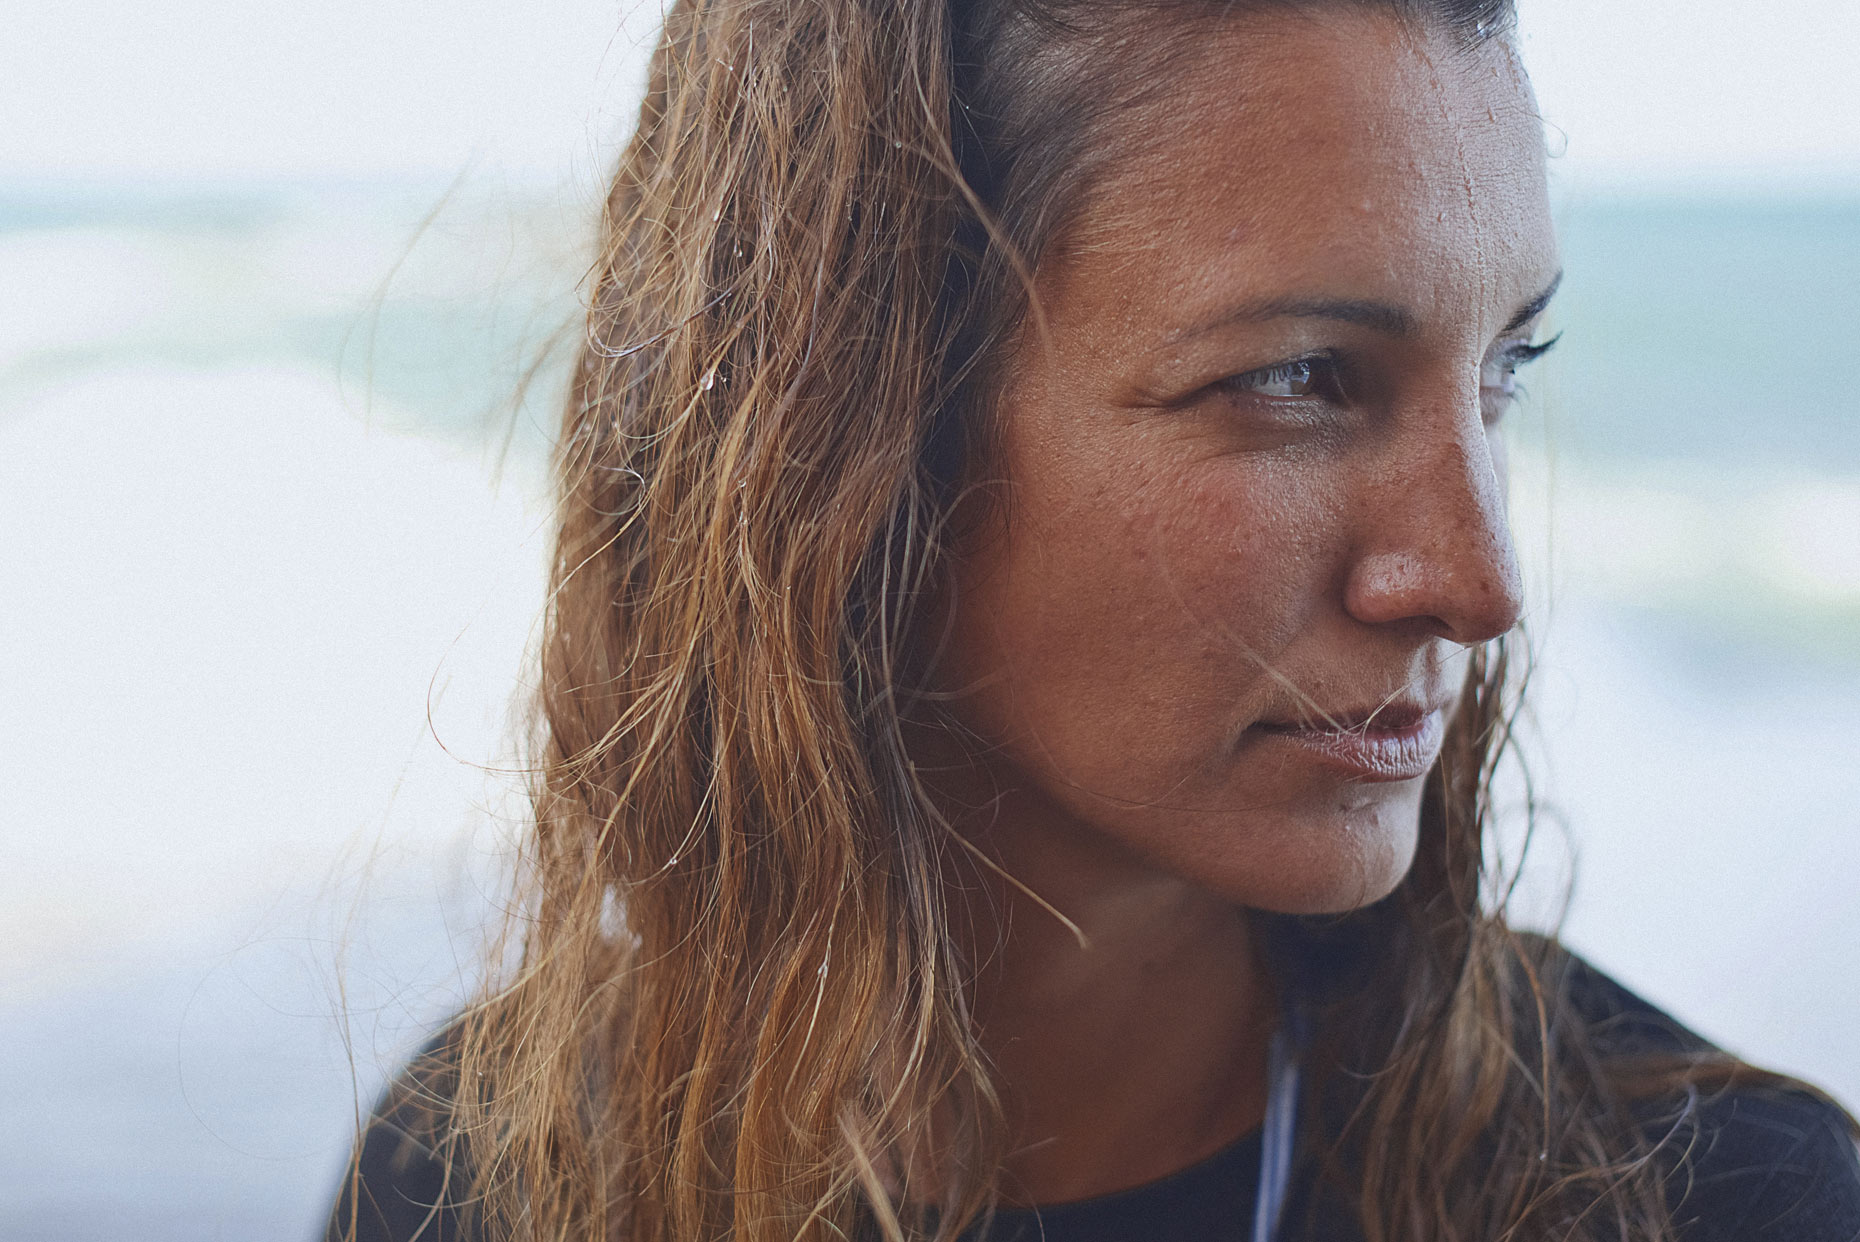 Portrait photograph of a surfer